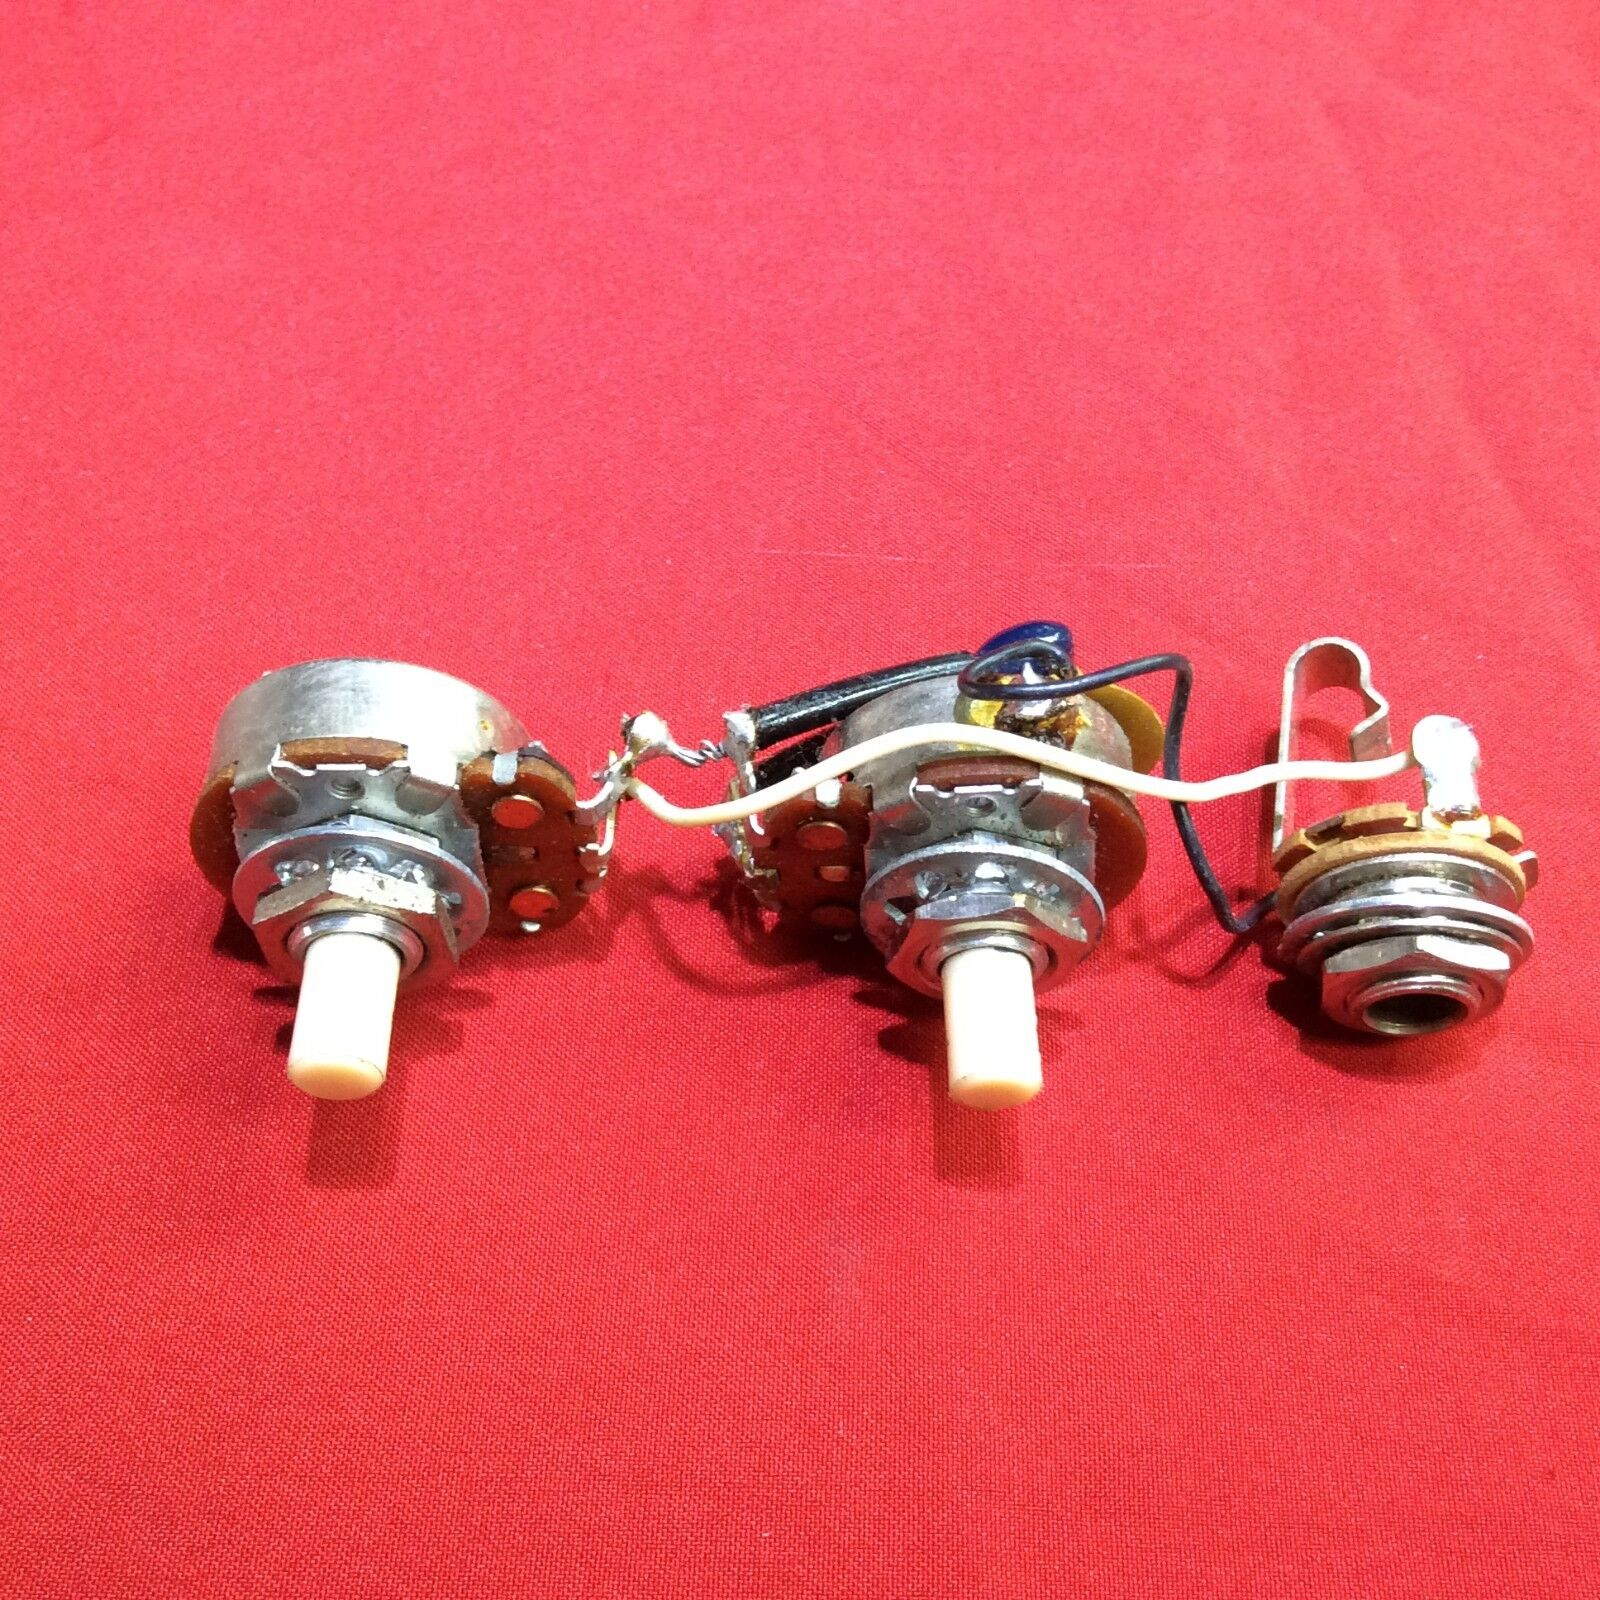 VINTAGE 1974 USA FENDER PRECISION BASS GUITAR WIRING HARNESS TELECASTER POTS